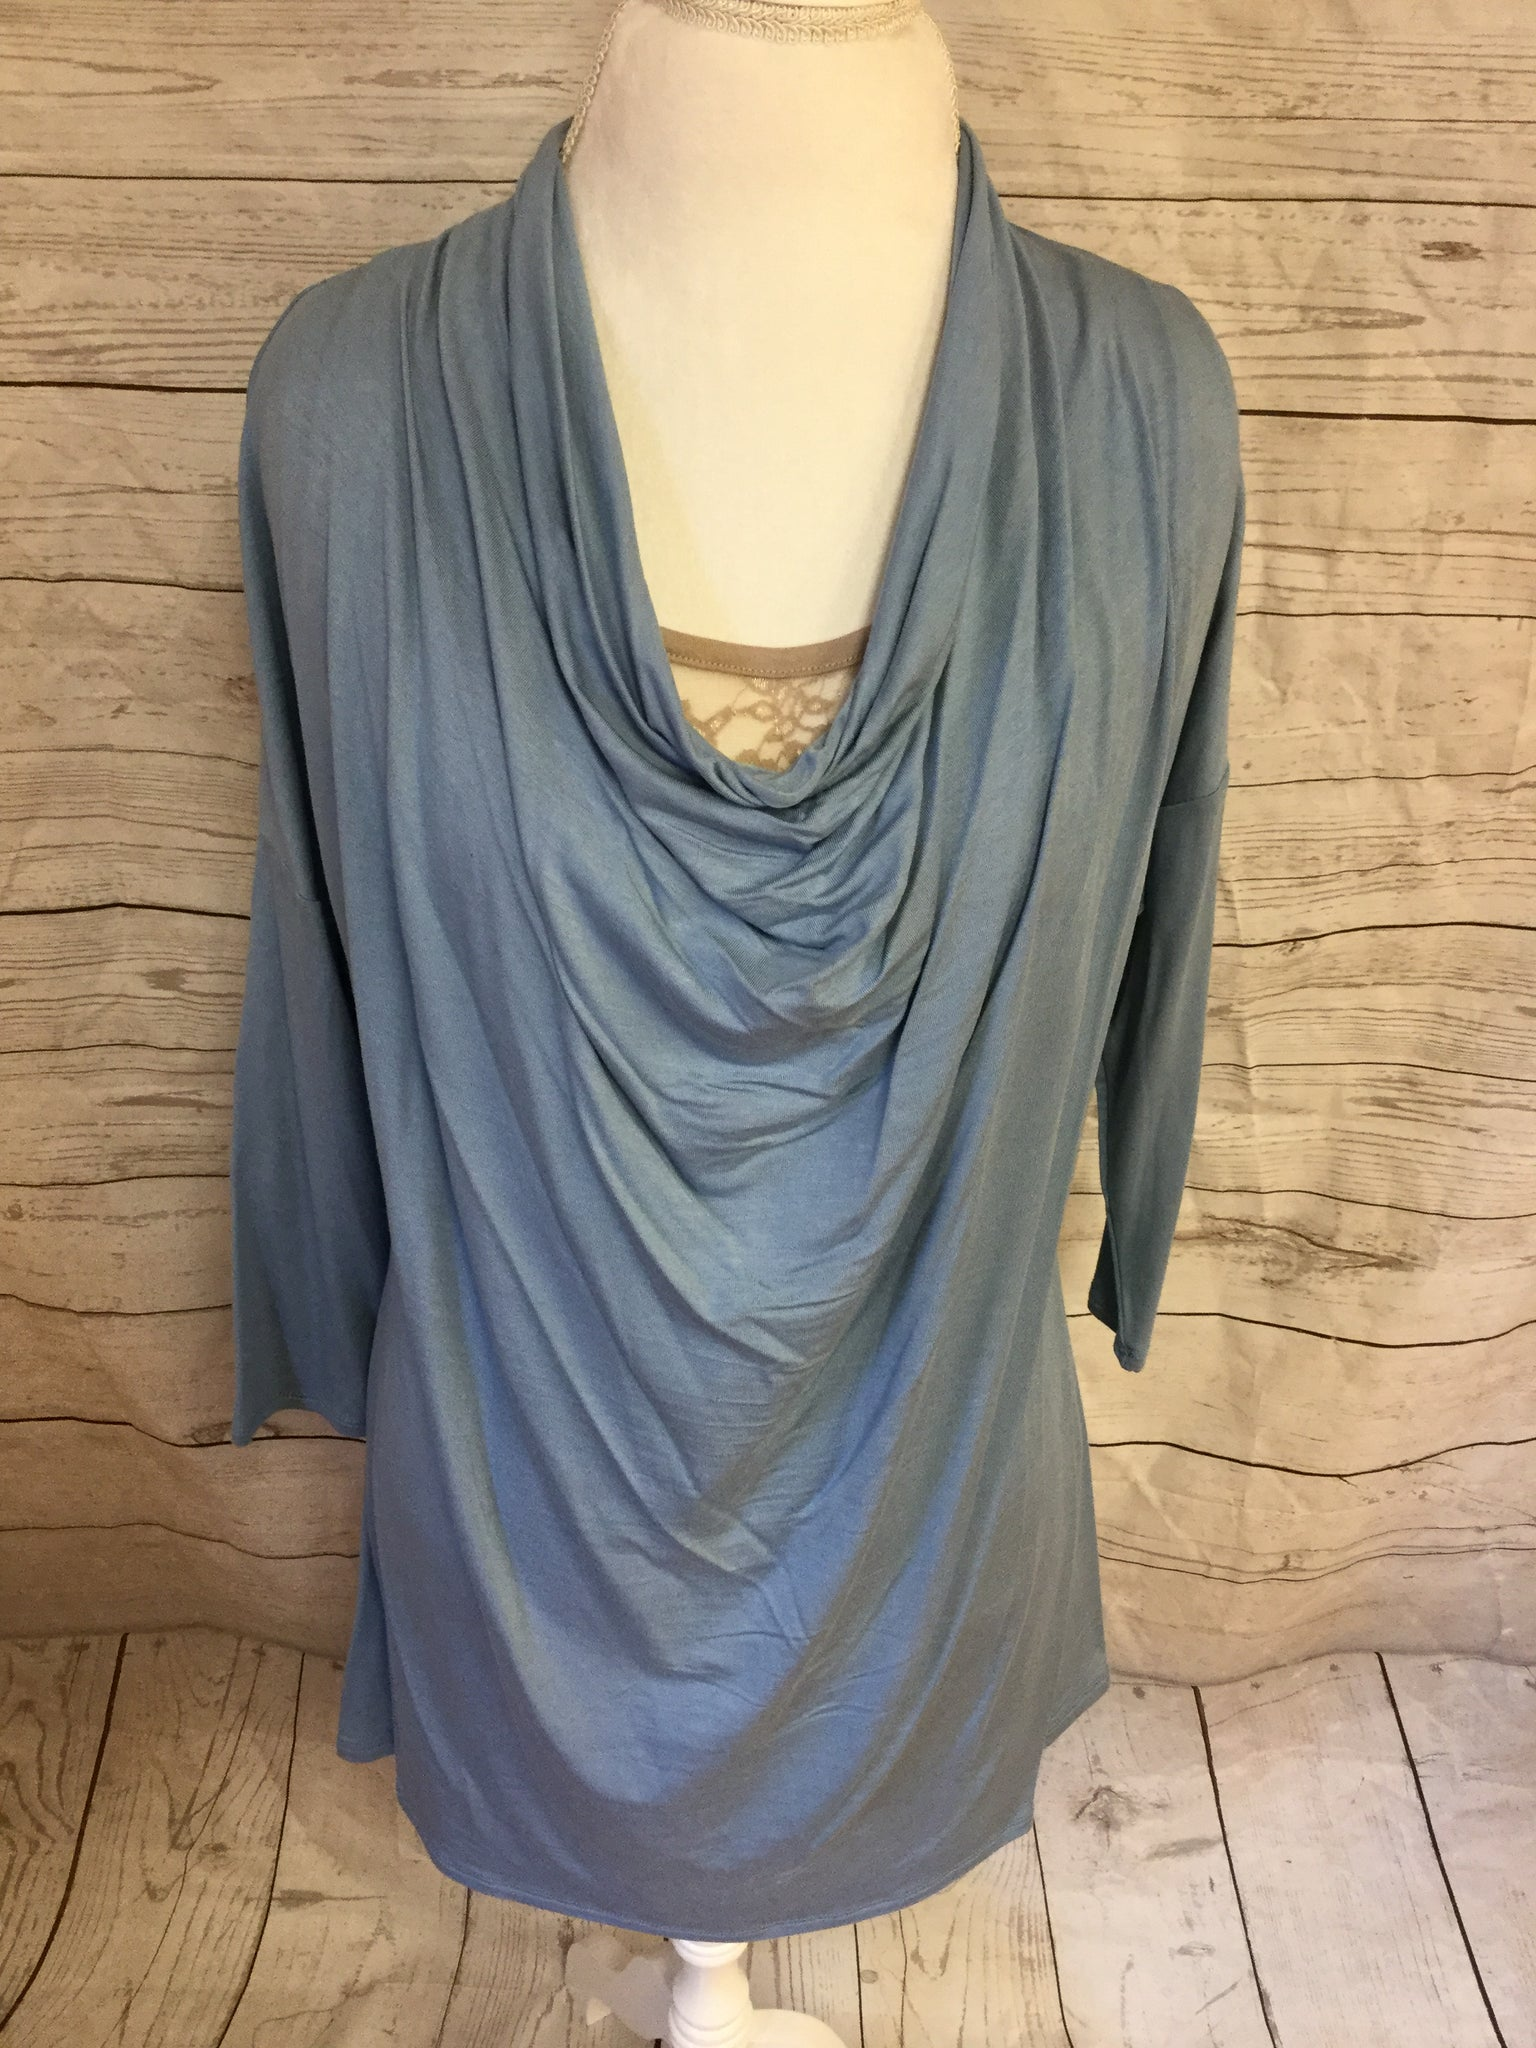 Waterfall Top with 3/4 Length Sleeve Dusty Blue Top